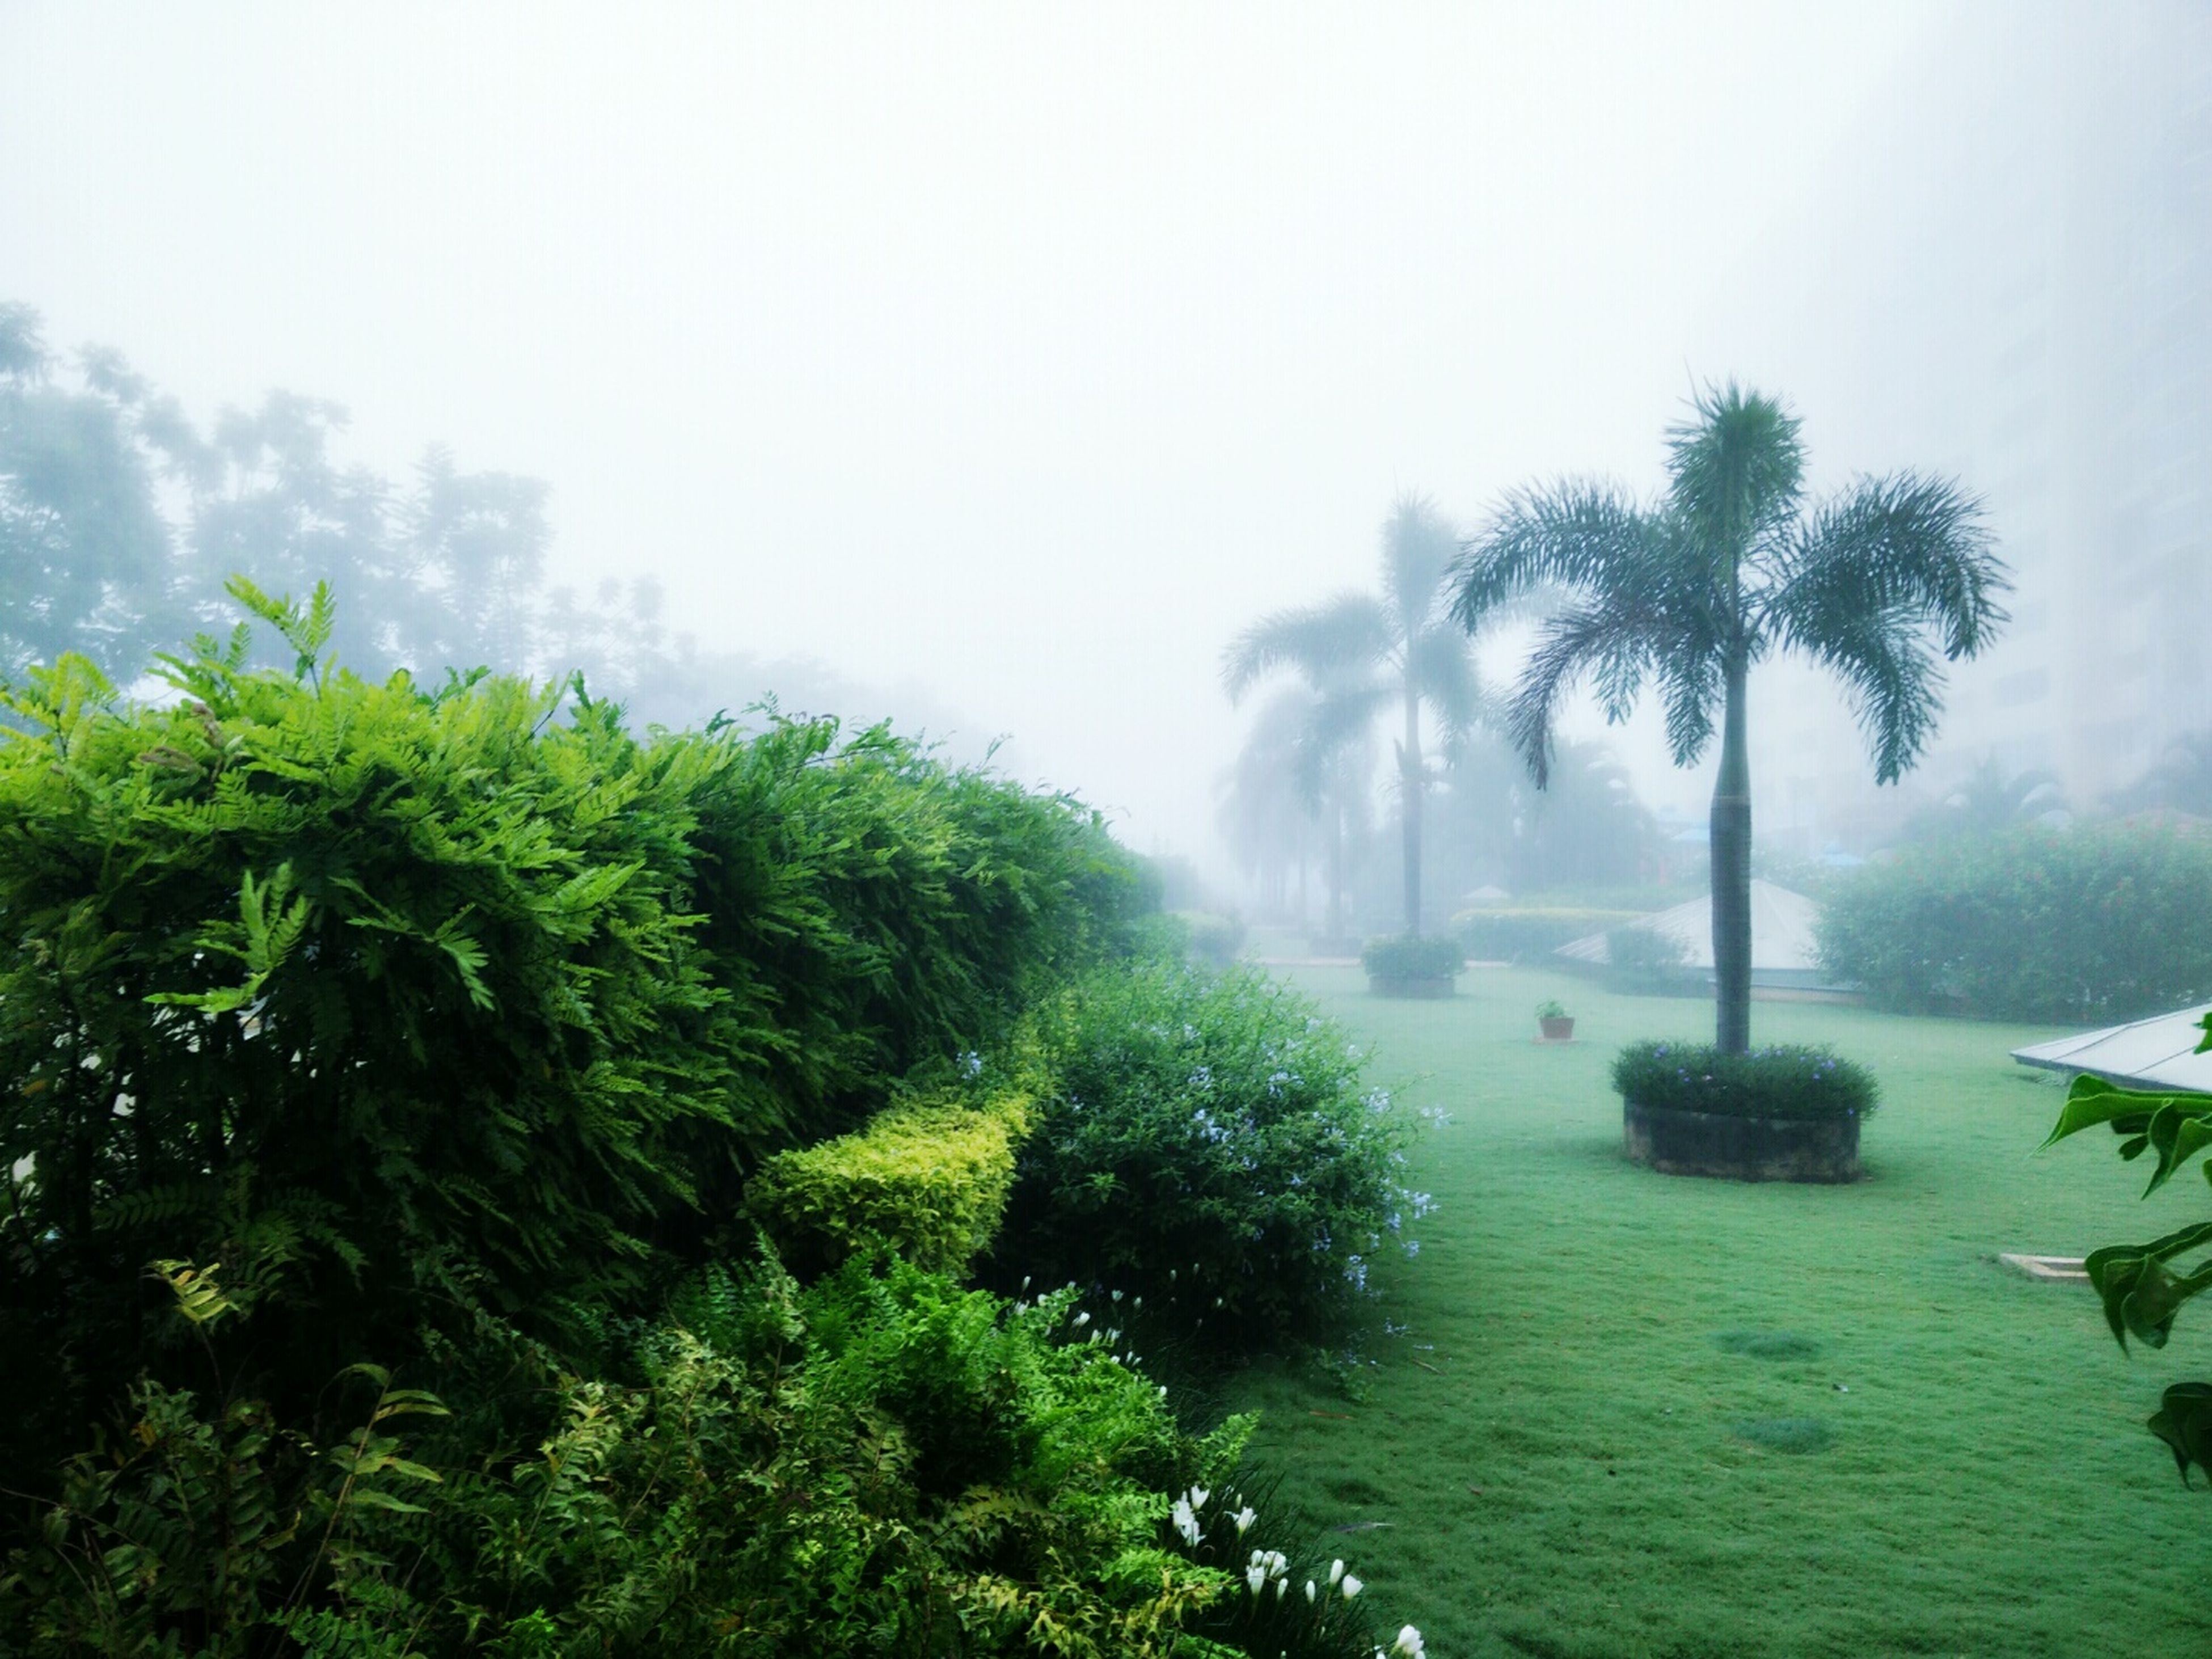 tree, palm tree, growth, green color, fog, nature, water, tranquility, beauty in nature, foggy, tranquil scene, scenics, weather, plant, sky, day, green, outdoors, no people